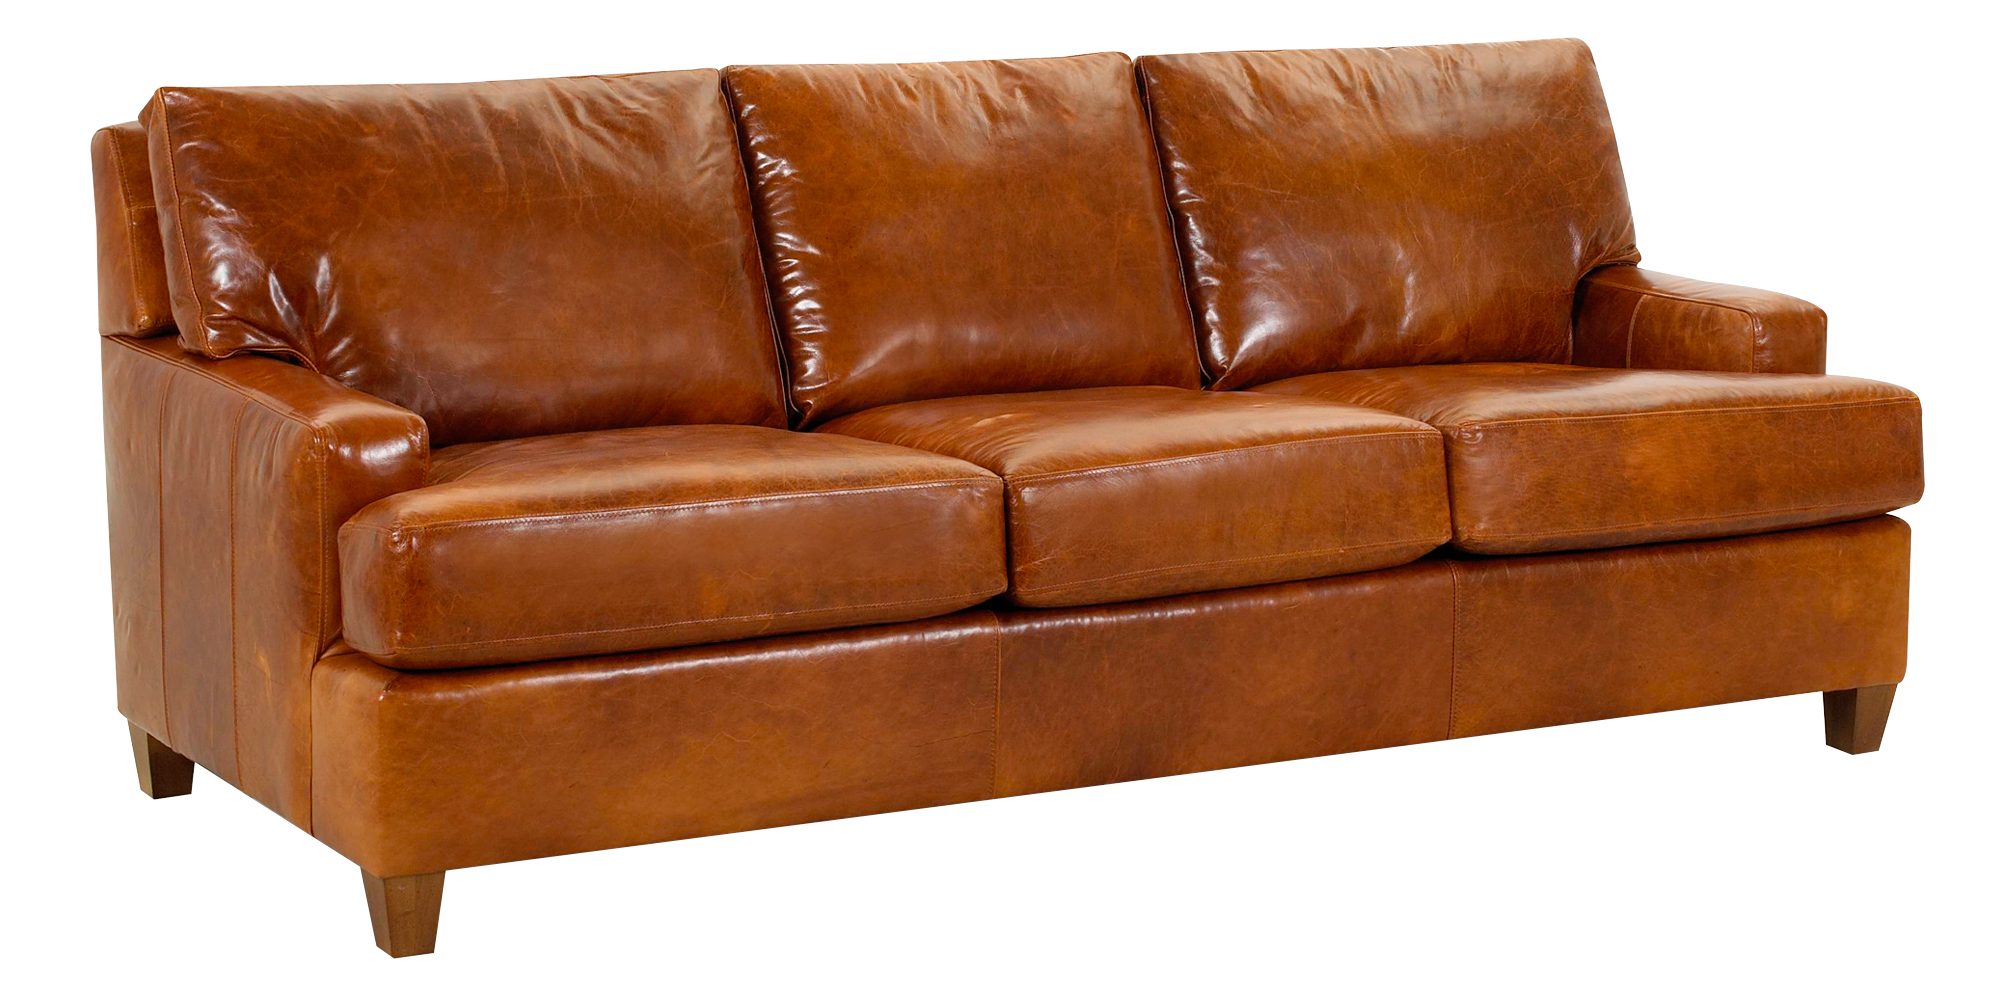 Urban Three Seat Leather Sofa Furniture Collection Club Furniture